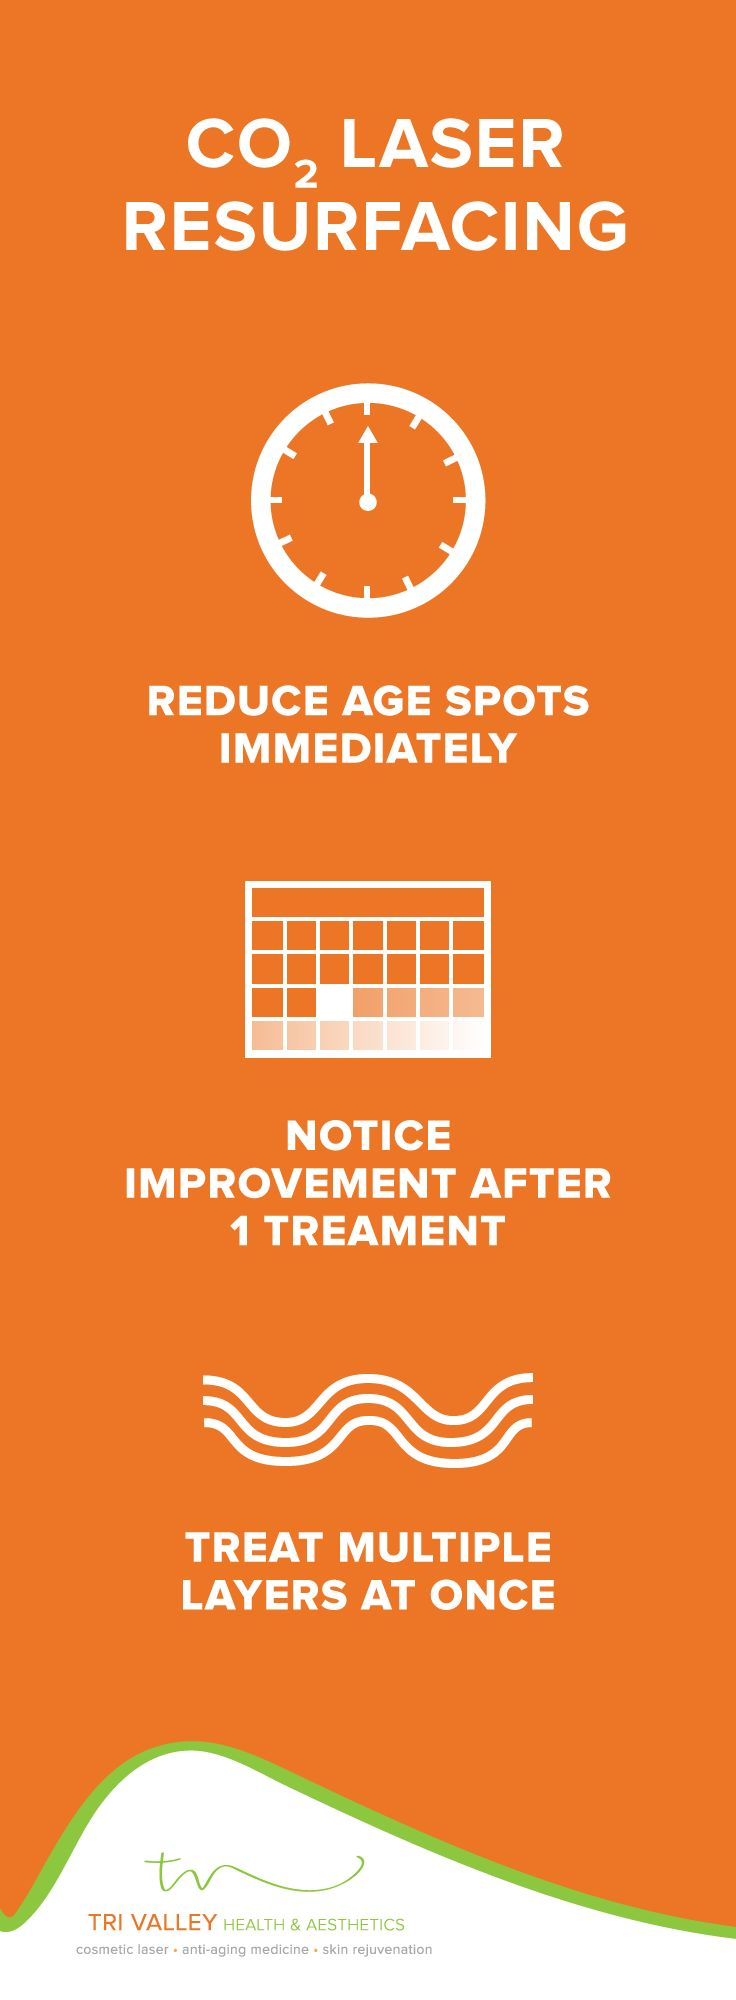 Yes, you CAN get rid of age spots! CO2 Laser Resurfacing improves skin after just one treatment.